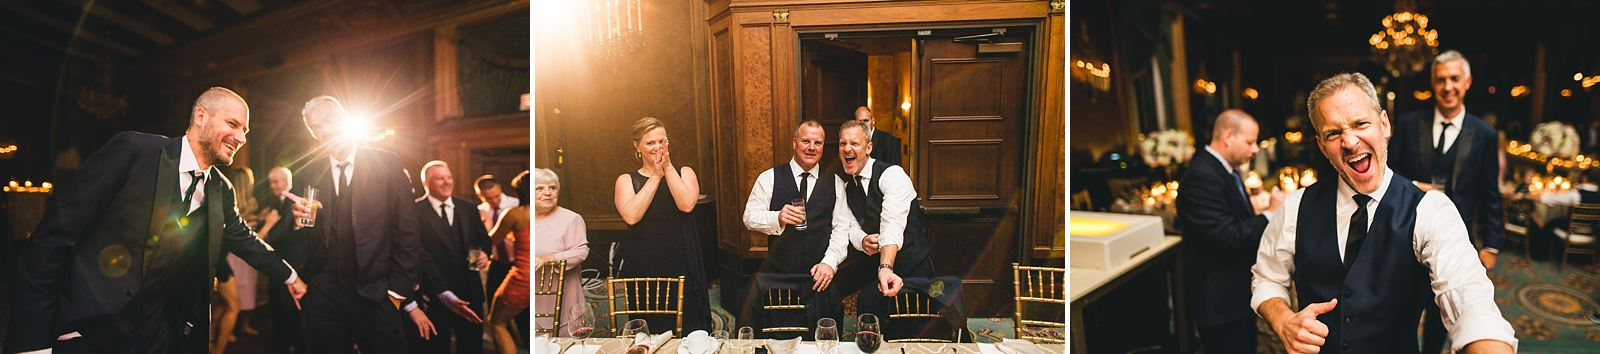 52 best reception photos in chicago - Intercontinental Chicago Hotel Wedding // Lili + Danny